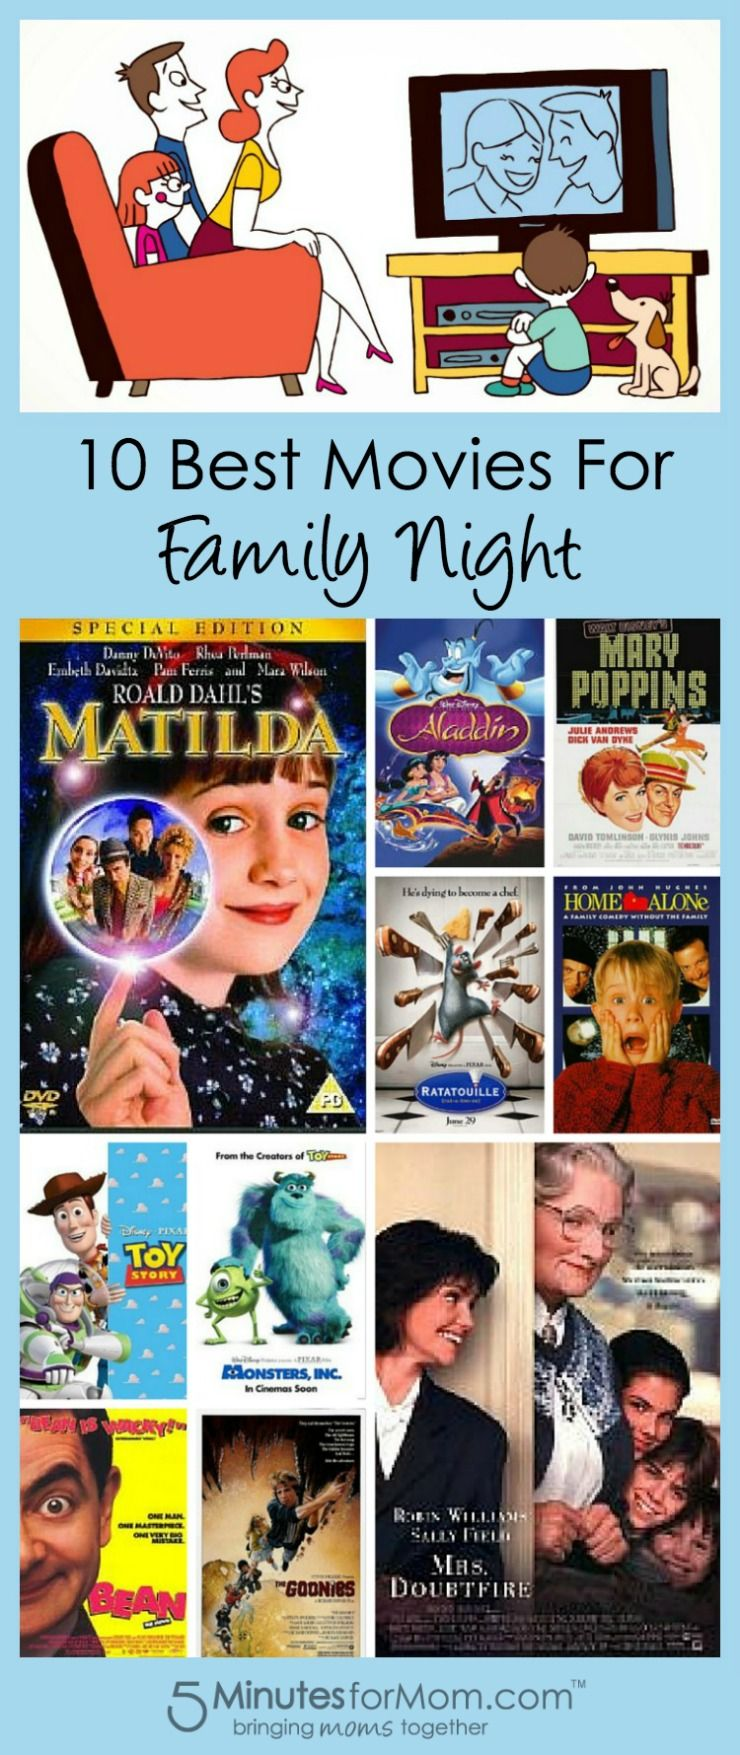 10 Best Movies For Family Nights 5 Minutes For Mom Family Movie Night Good Movies Family Night